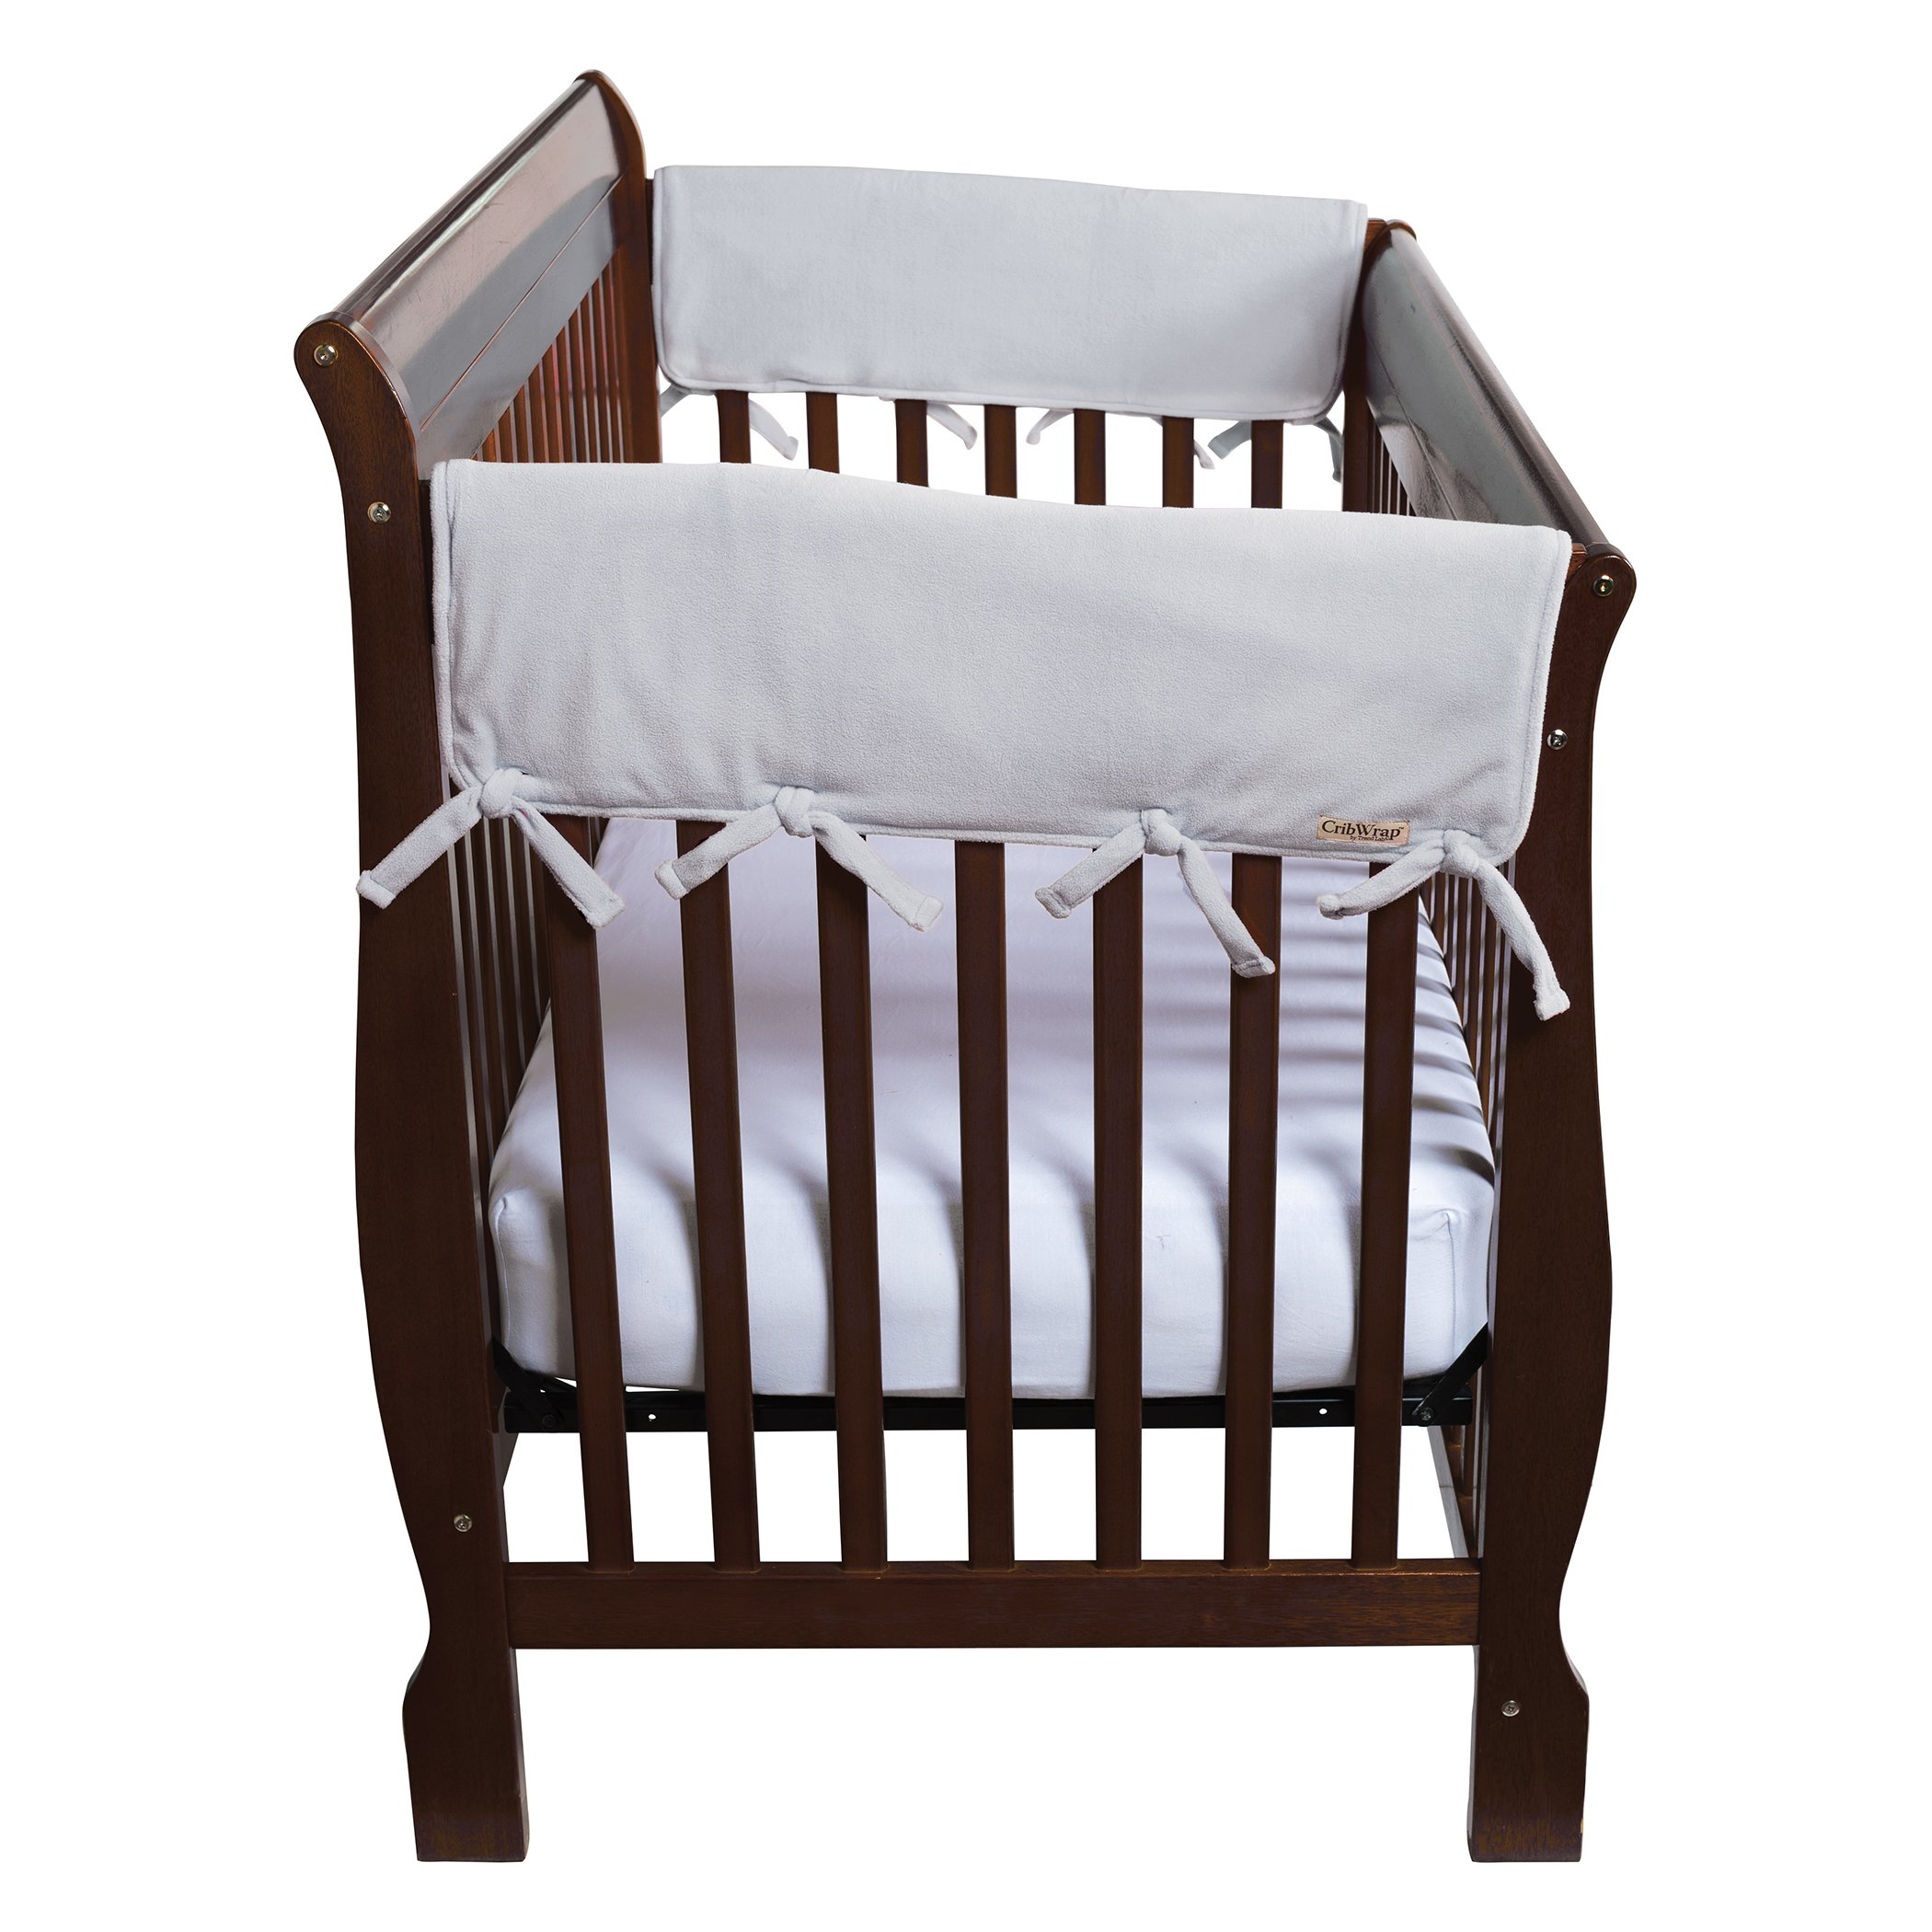 Amazon.com : TILLYOU Personalized Padded Baby Crib Rail